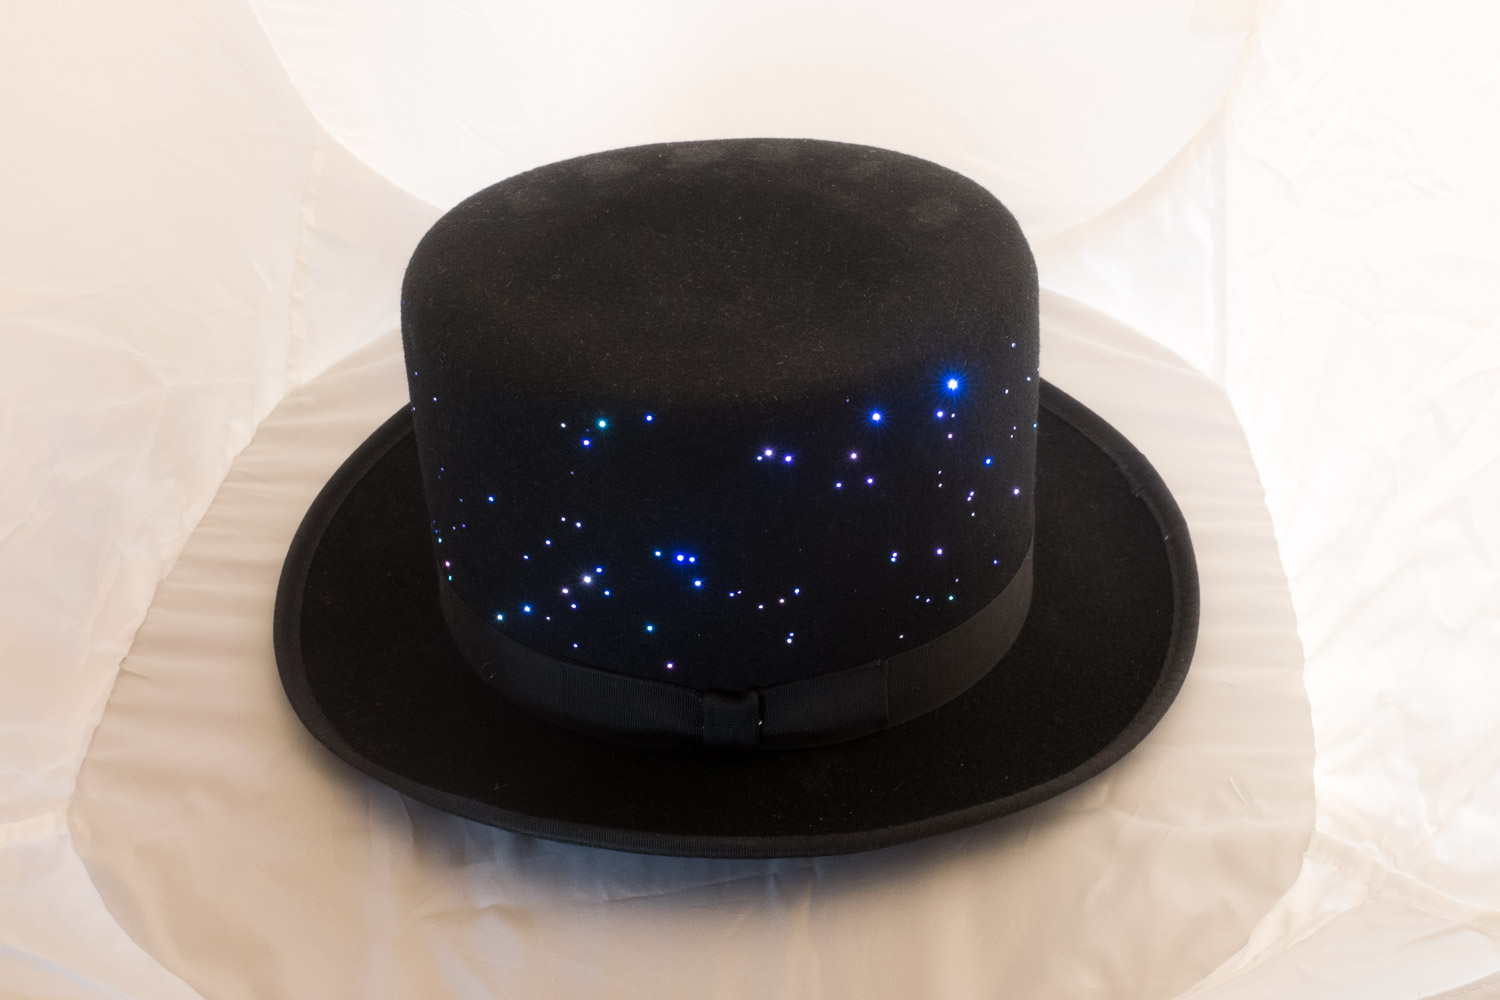 The finished hat